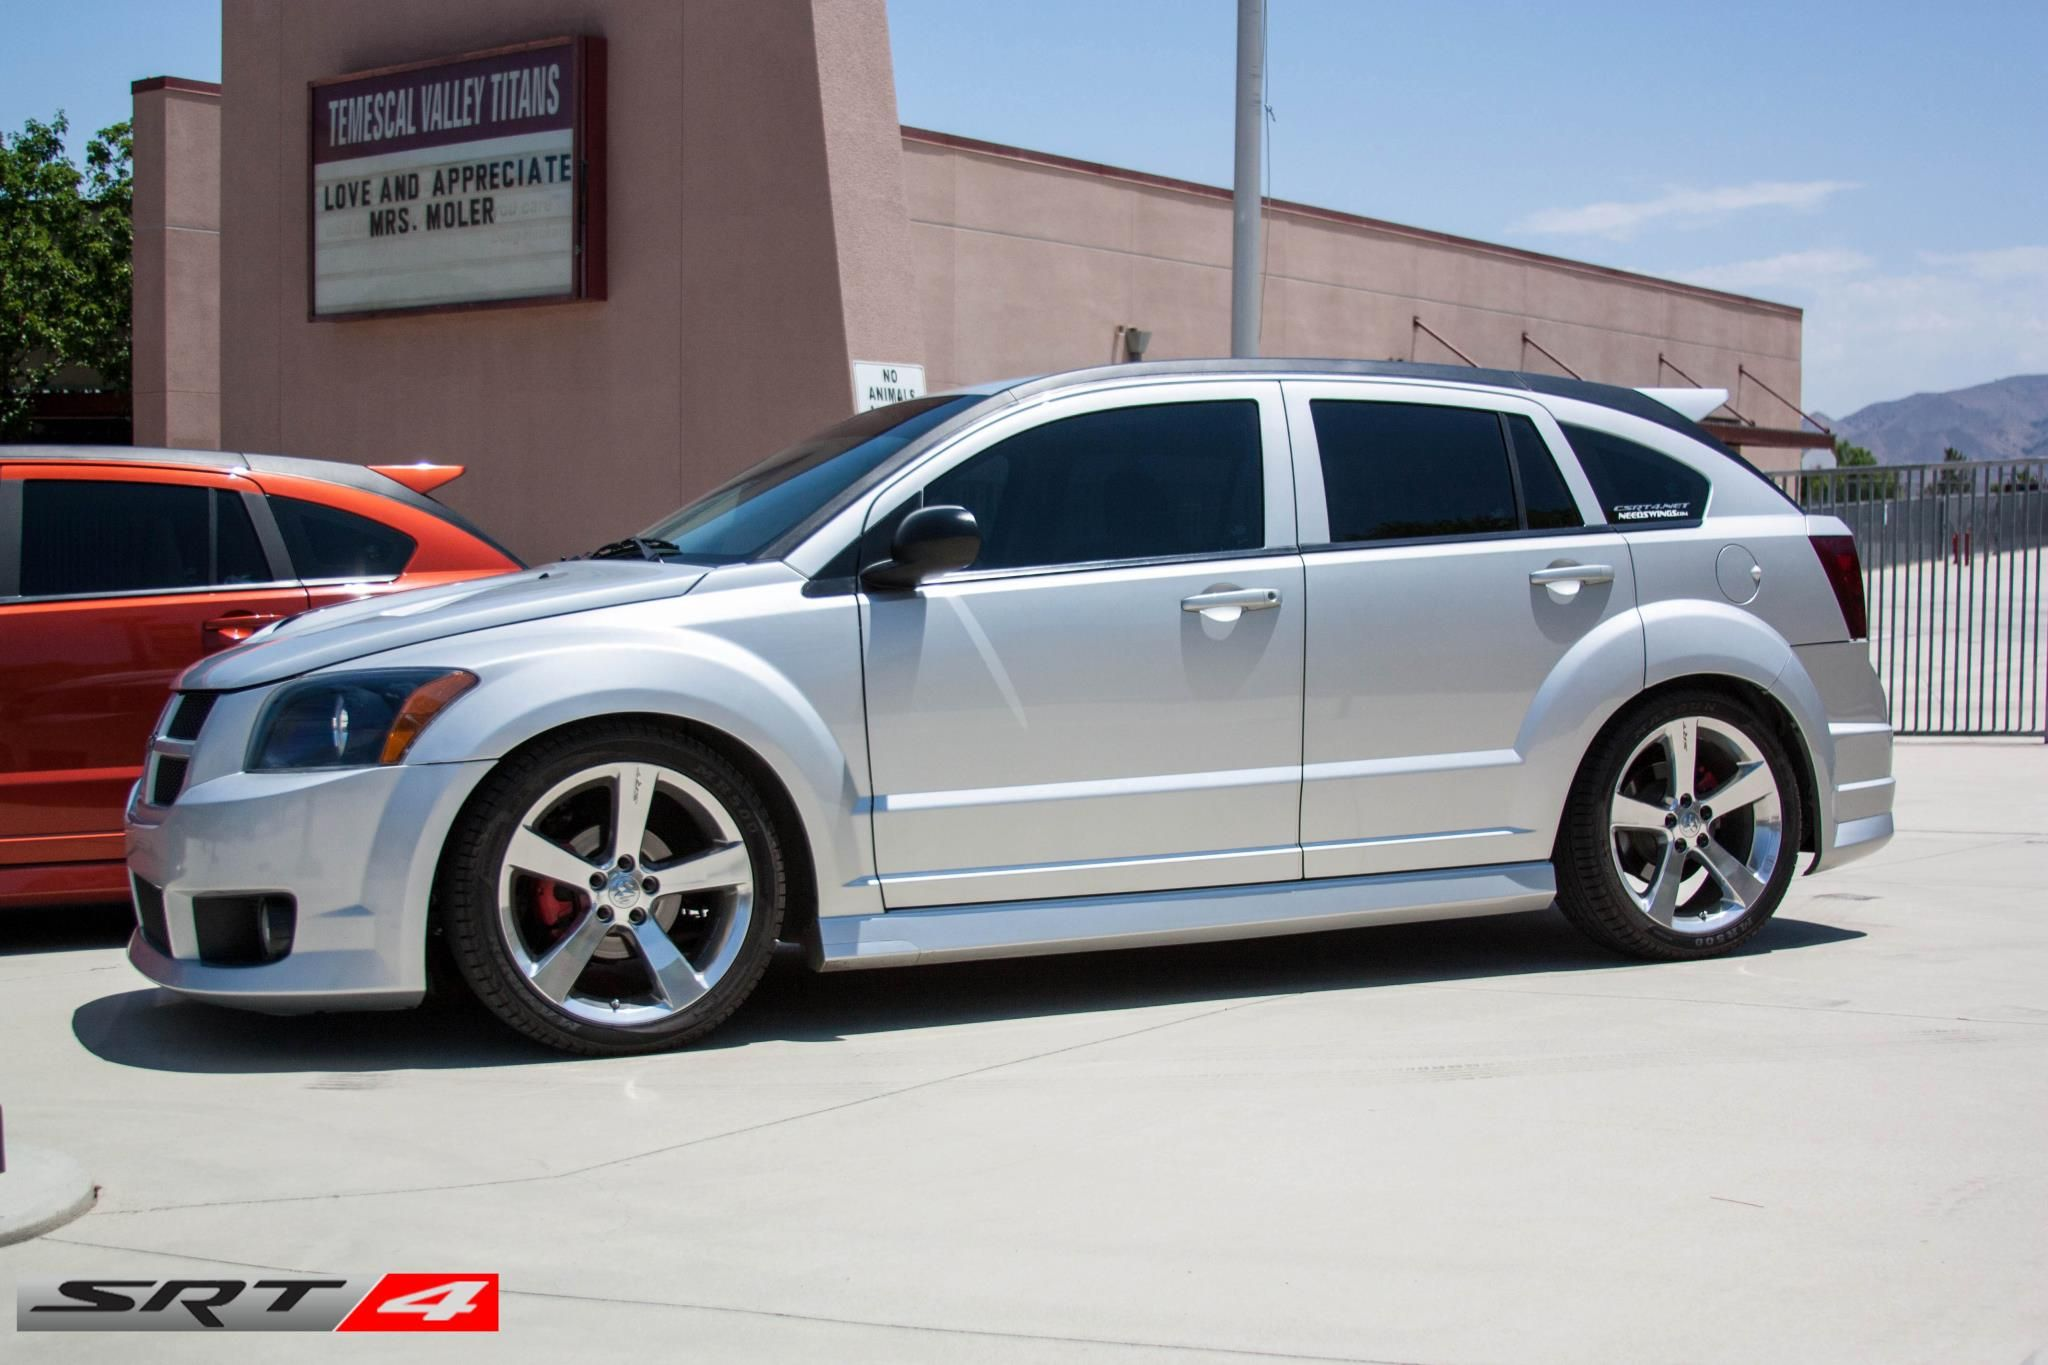 Silver Bullet Nice And Clean Caliber SRT 4 The Best